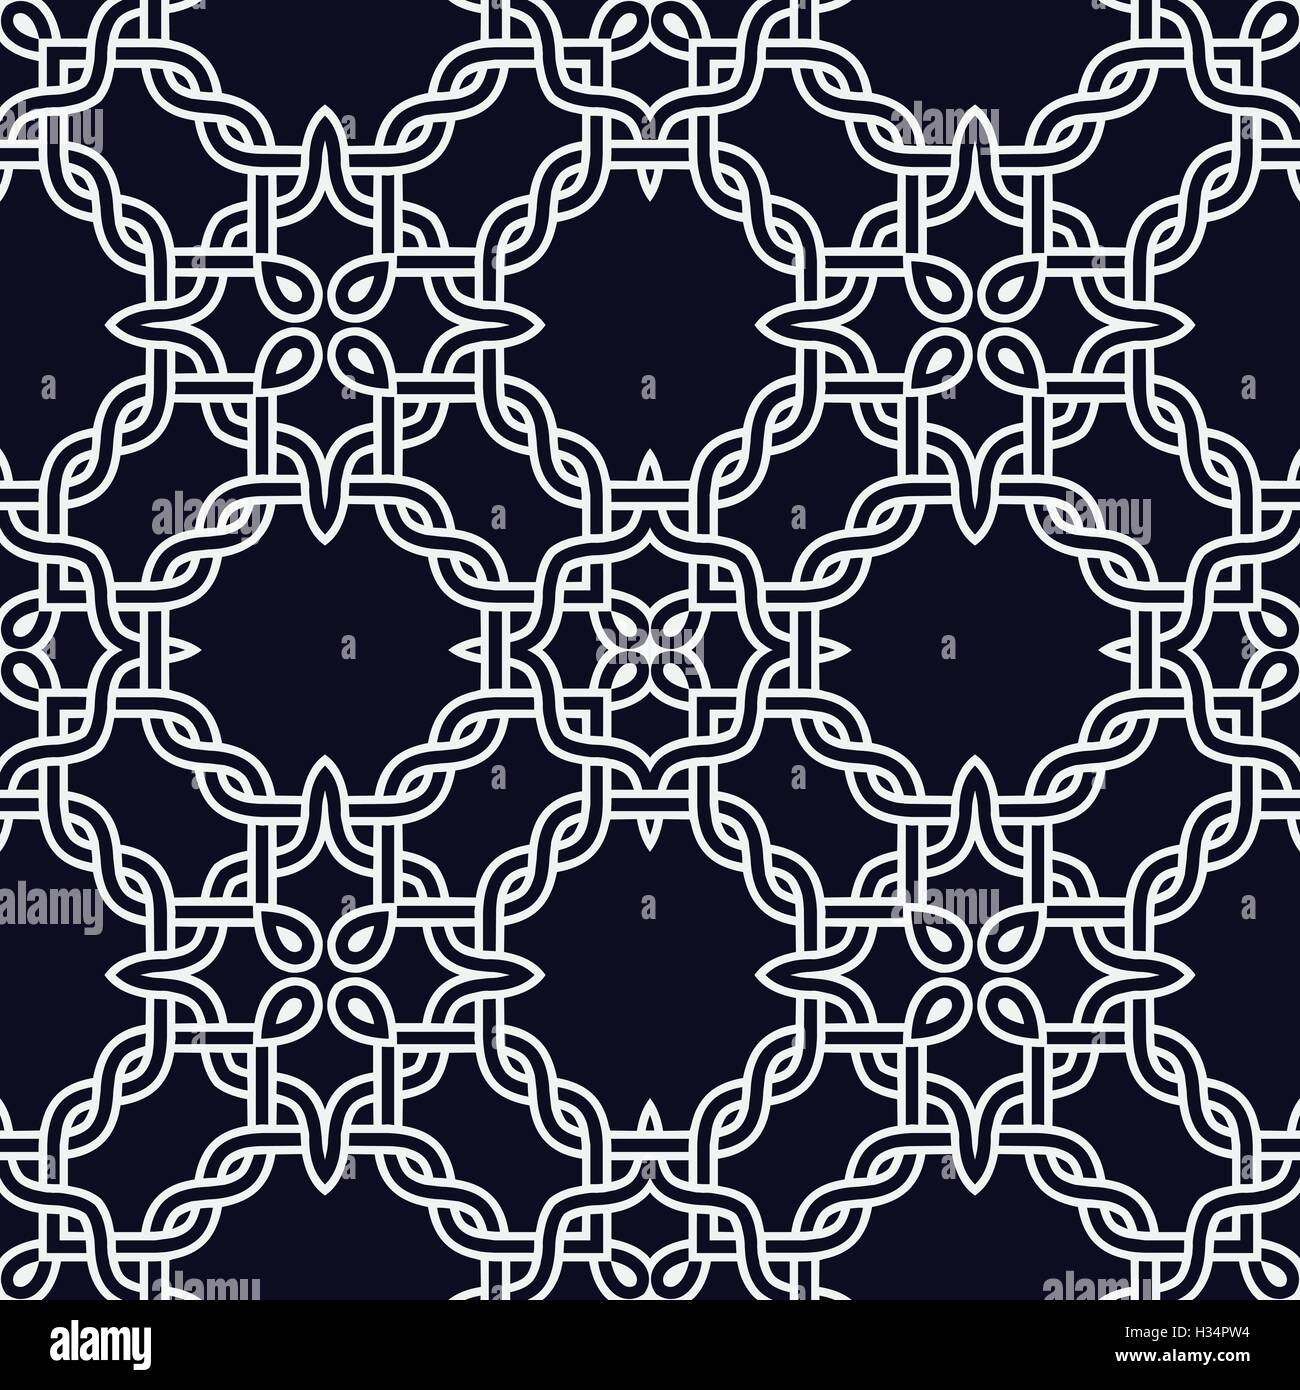 Abstract Celtic Knot Seamless Pattern Vector Background Template For